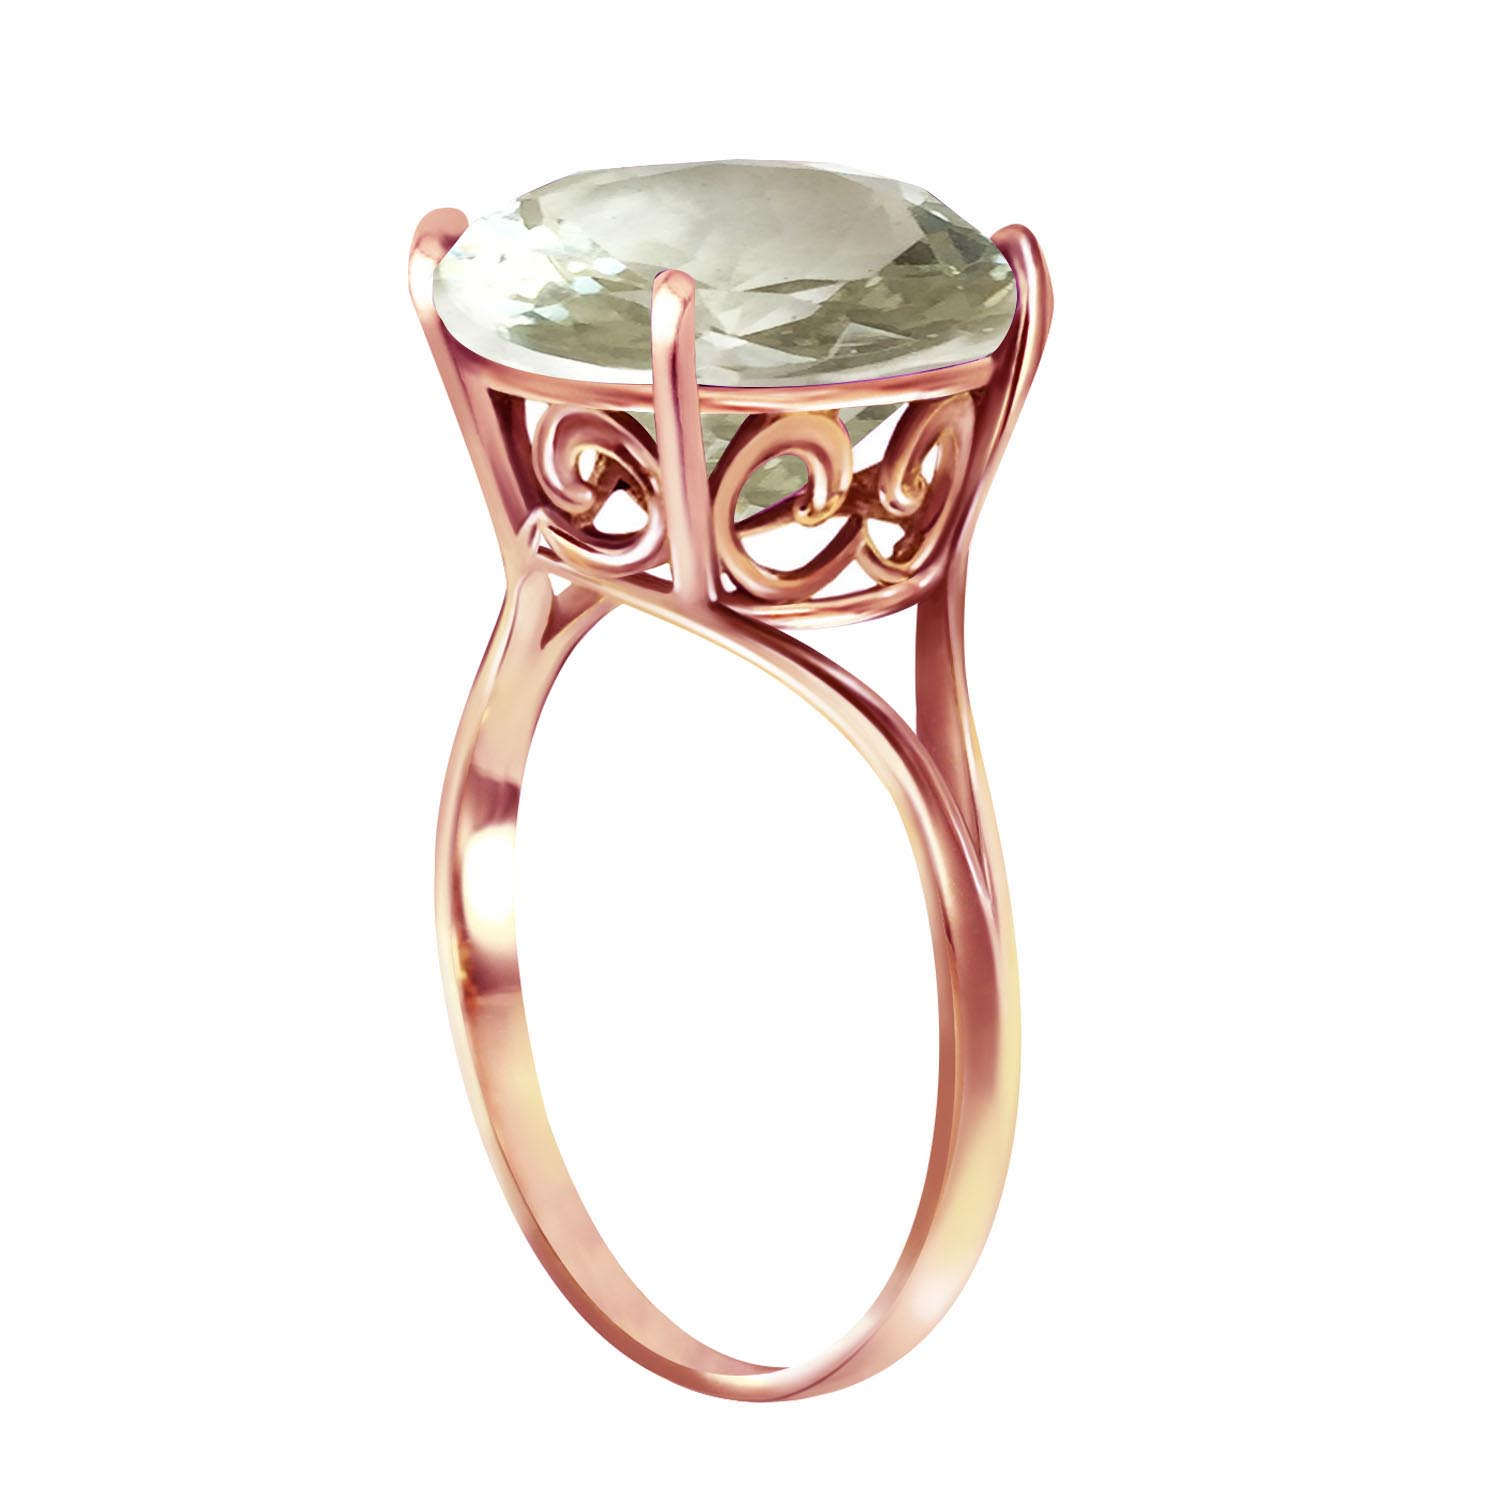 Round Brilliant Cut Green Amethyst Ring 5.5ct in 9ct Rose Gold